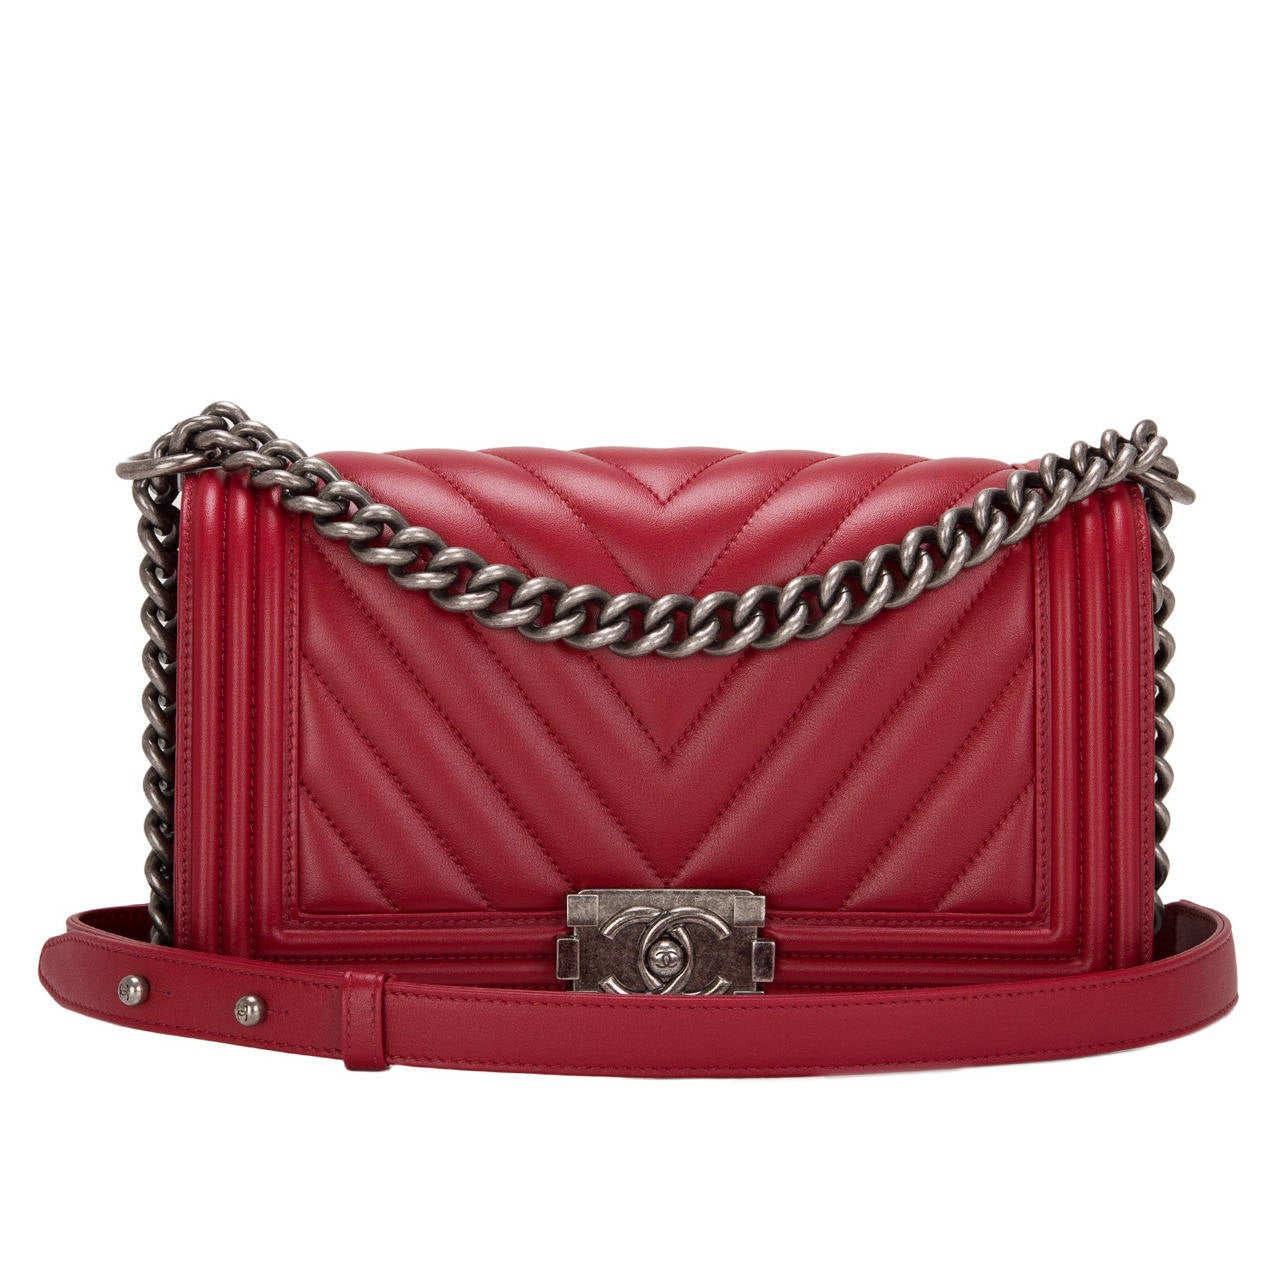 Chanel Red Chevron Medium Boy Bag At 1stdibs